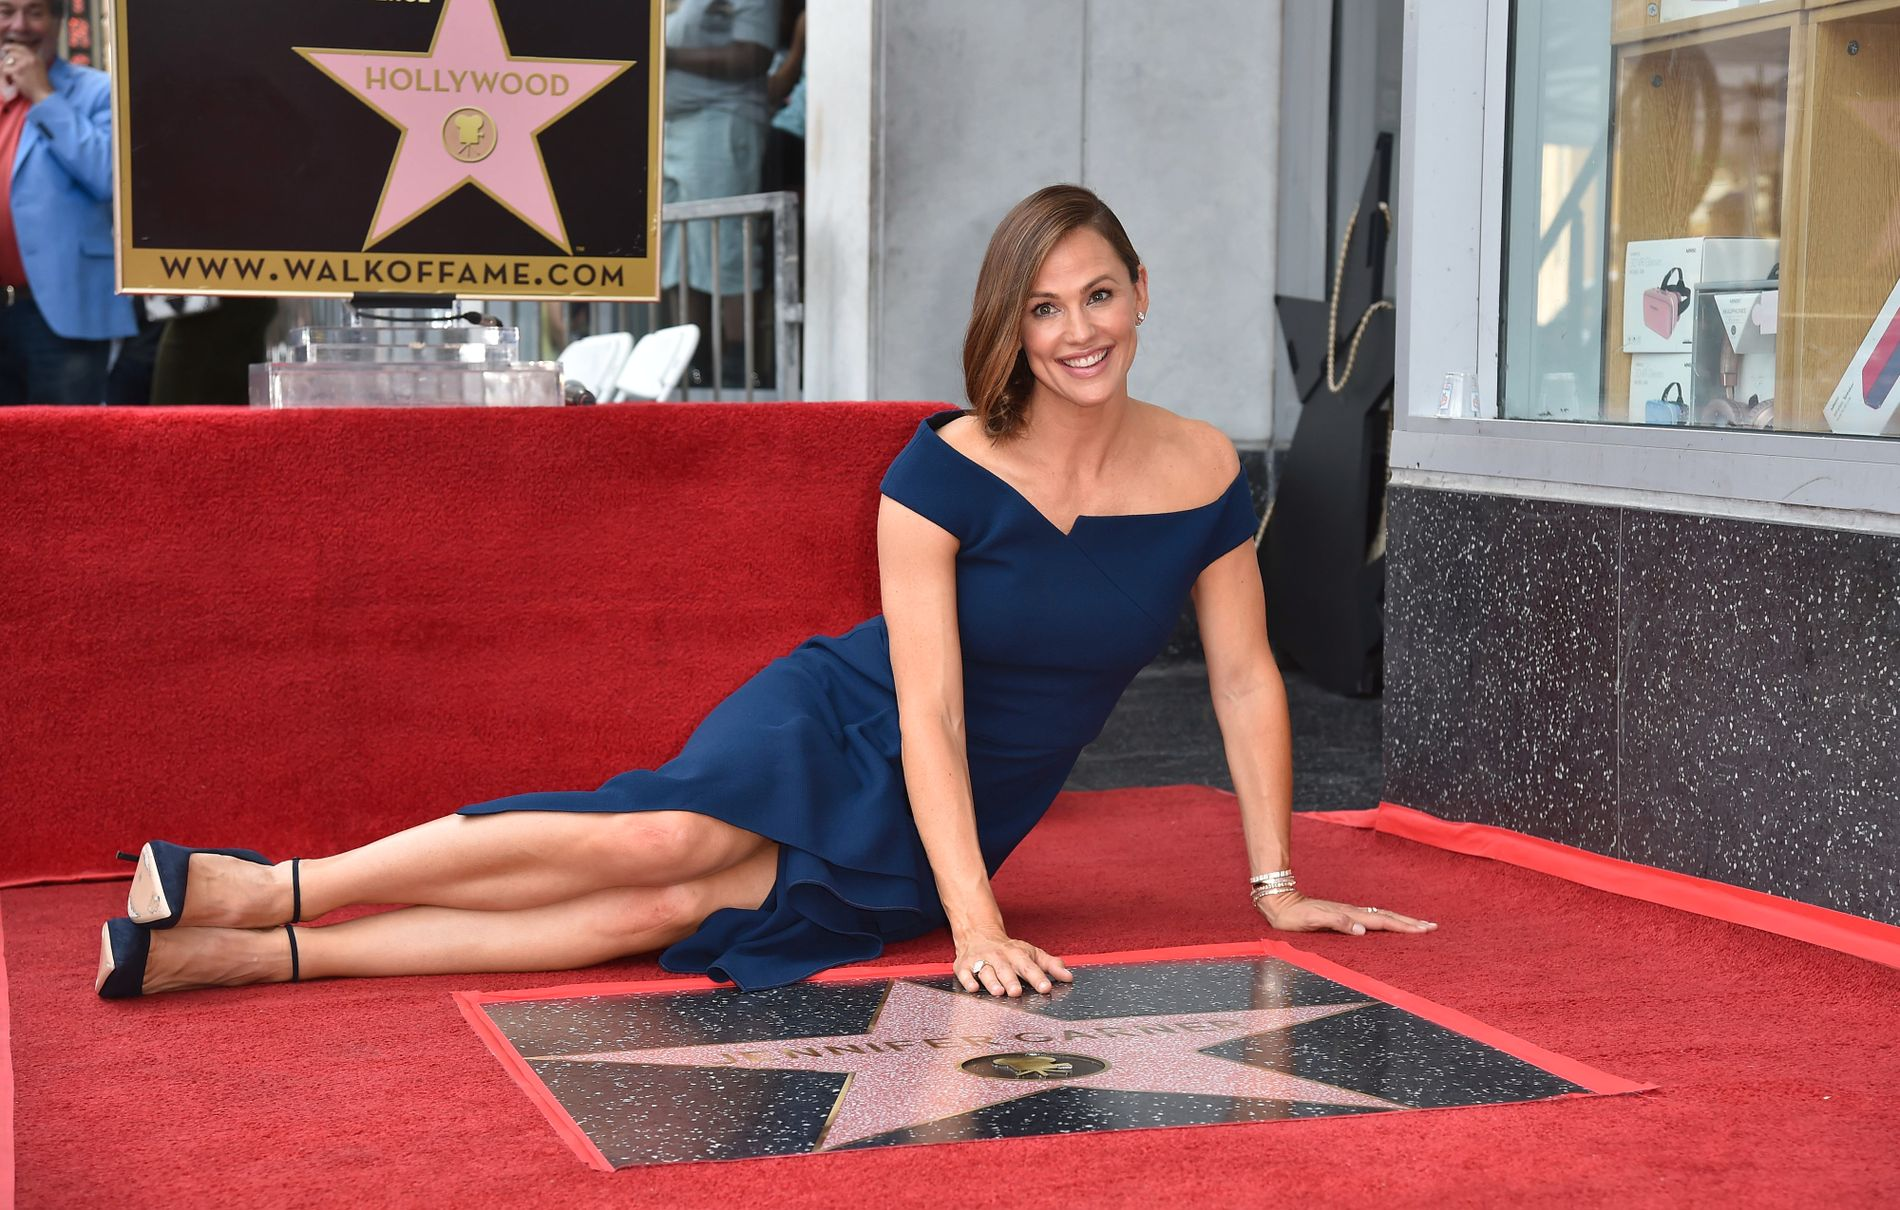 Jennifer Garner poserer liggende på ærverdige Hollywood Walk of Fame.